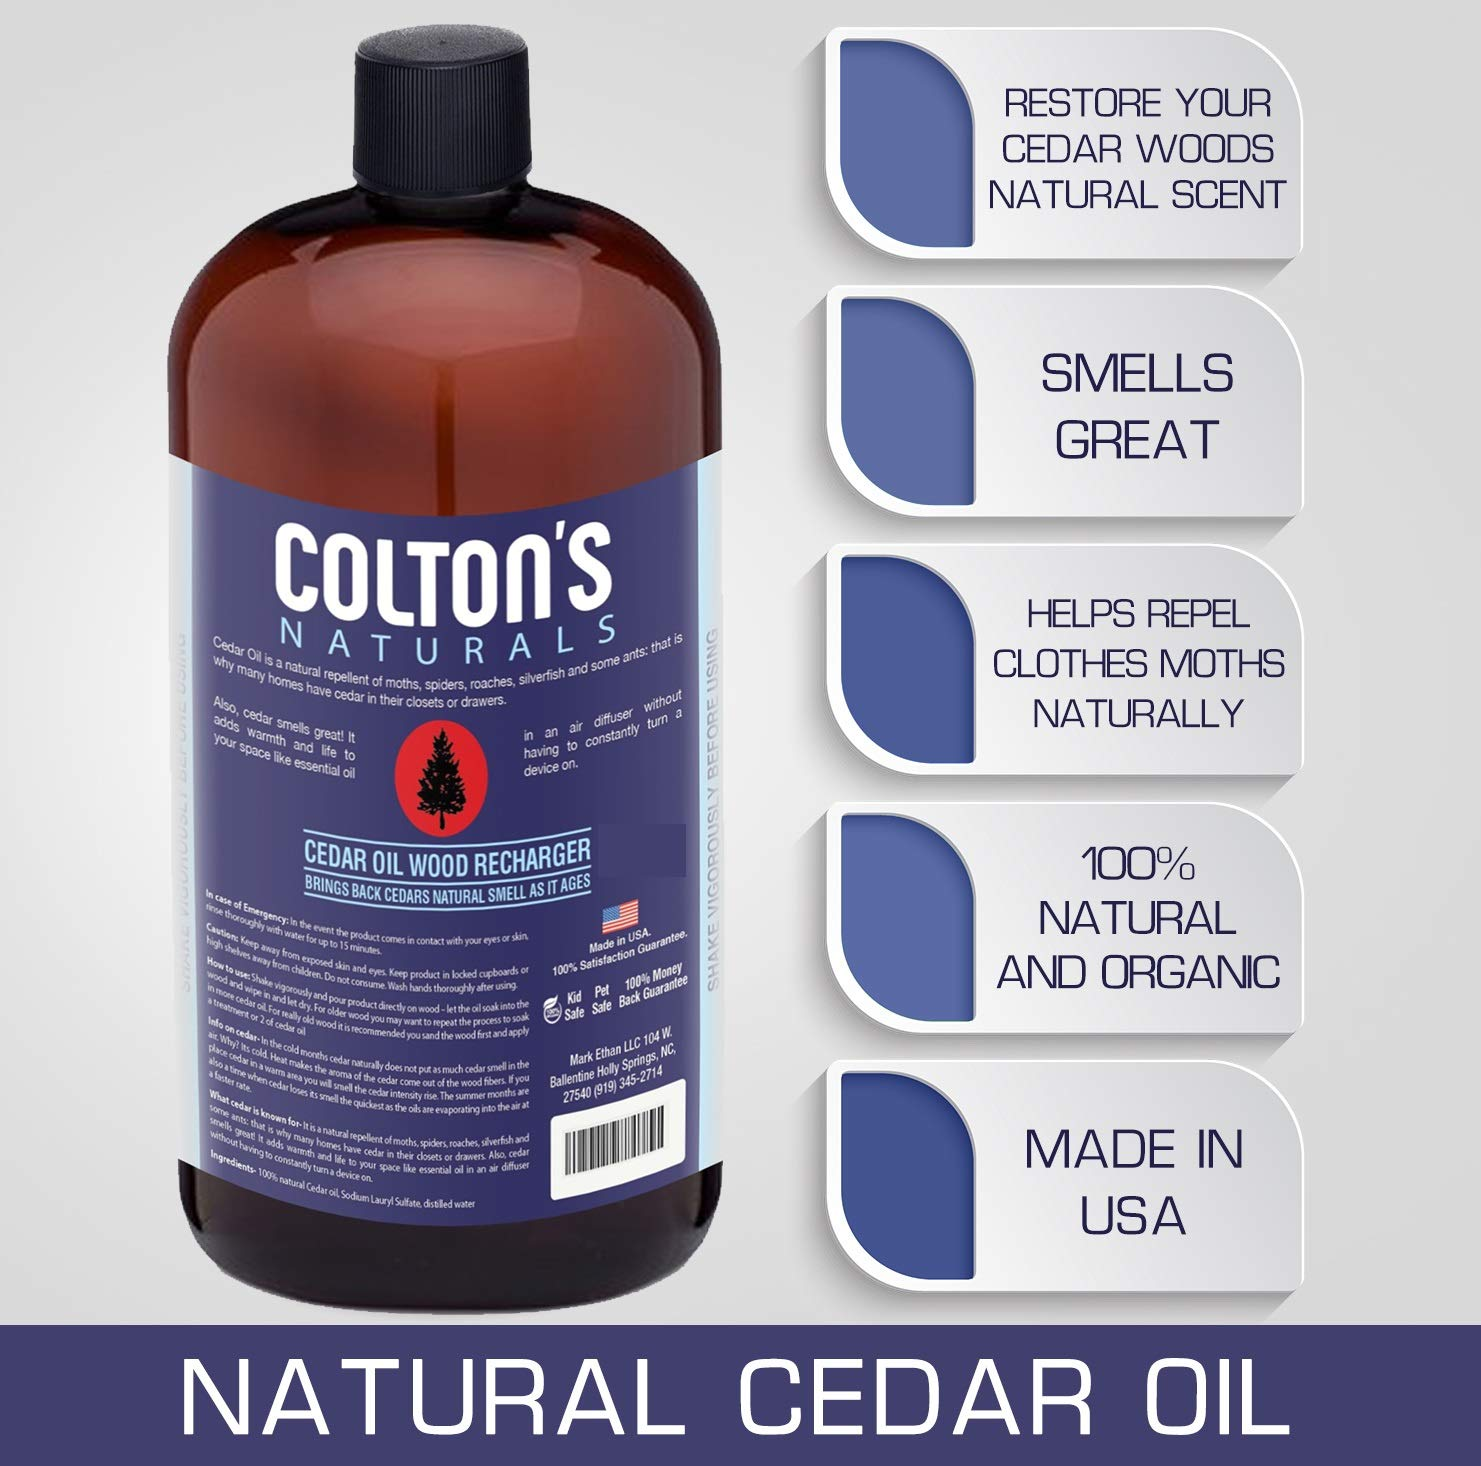 Colton's Naturals Cedar Oil Wood Replenish Original Cedar Scent Restore (32 Ounces) by Colton's Naturals